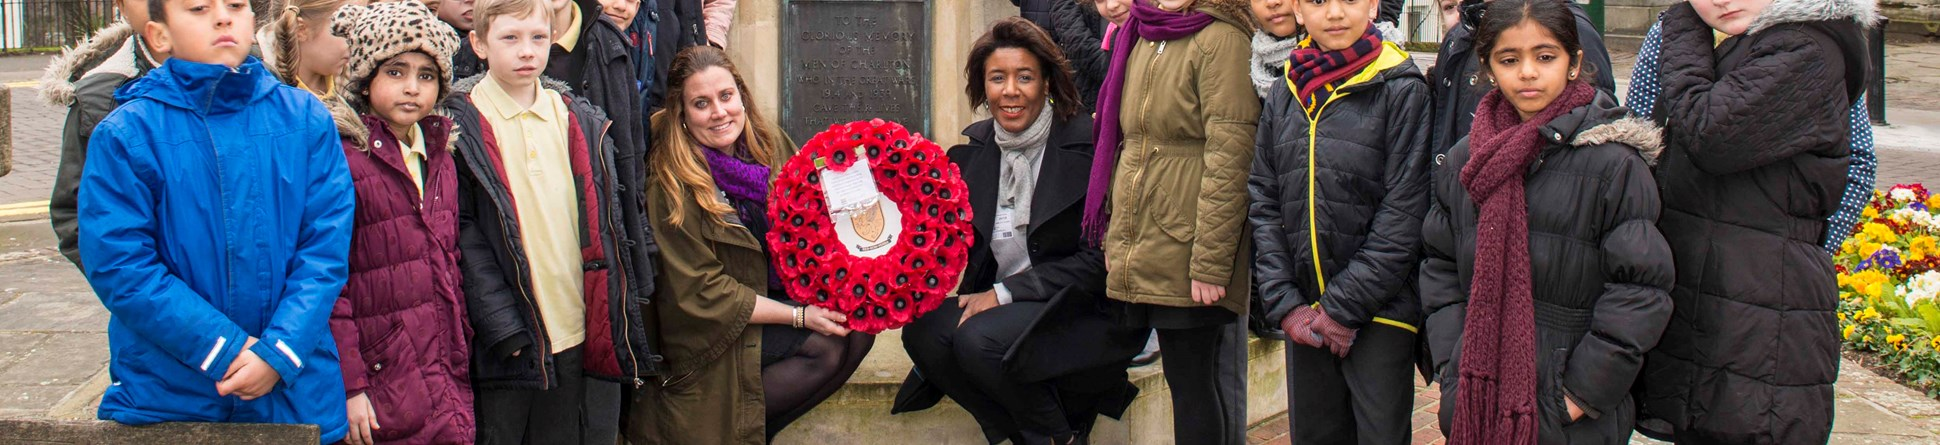 Children from Charlton Manor Primary School, Tiva Montalbano First World War Programme Manager at Historic England and Cllr Denise Scott-Mcdonald gather at the war memorial to lay a wreath.